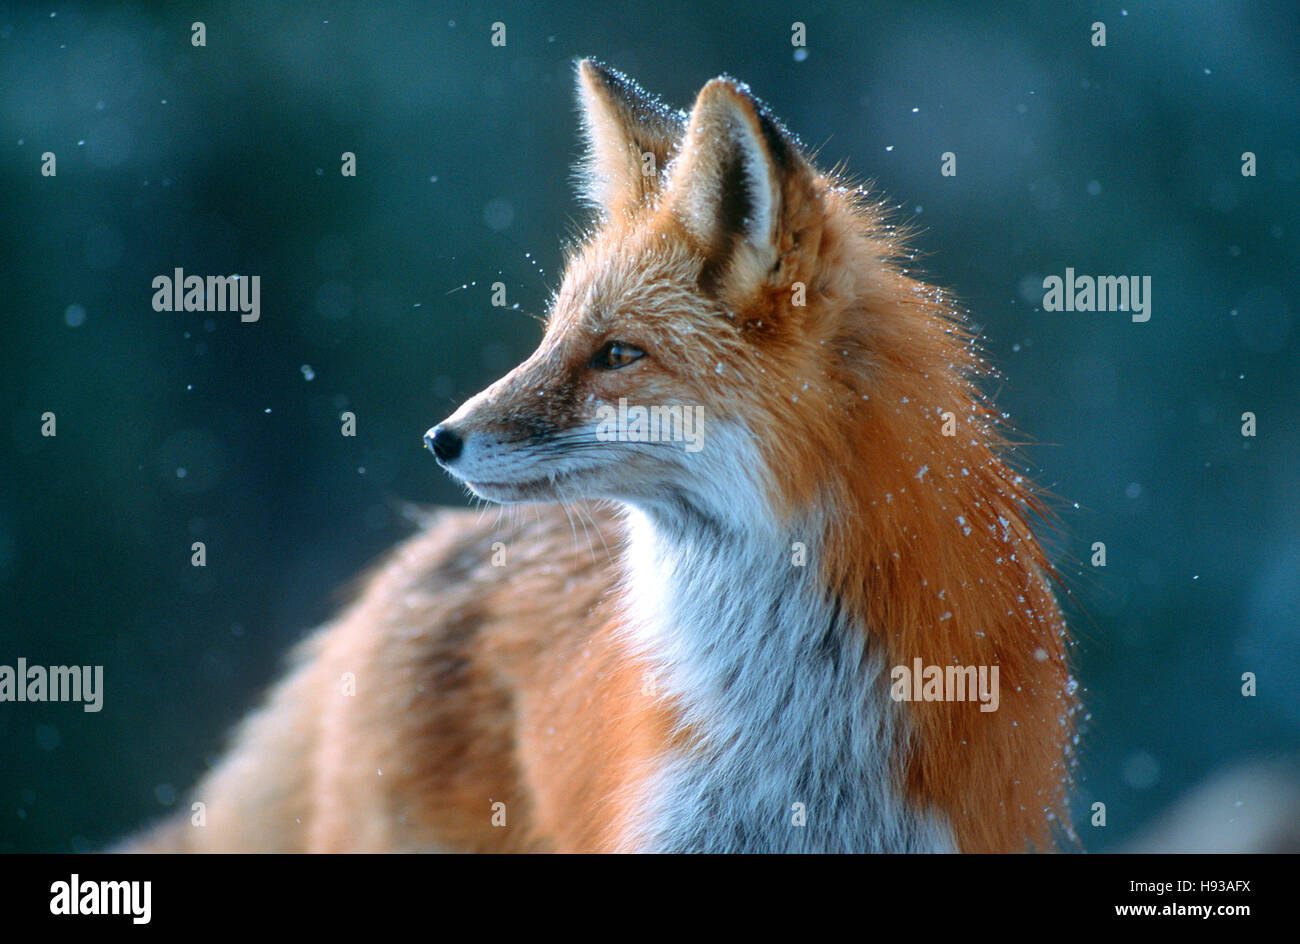 Red fox looks cautious. Near Boulder, Colorado - Stock Image